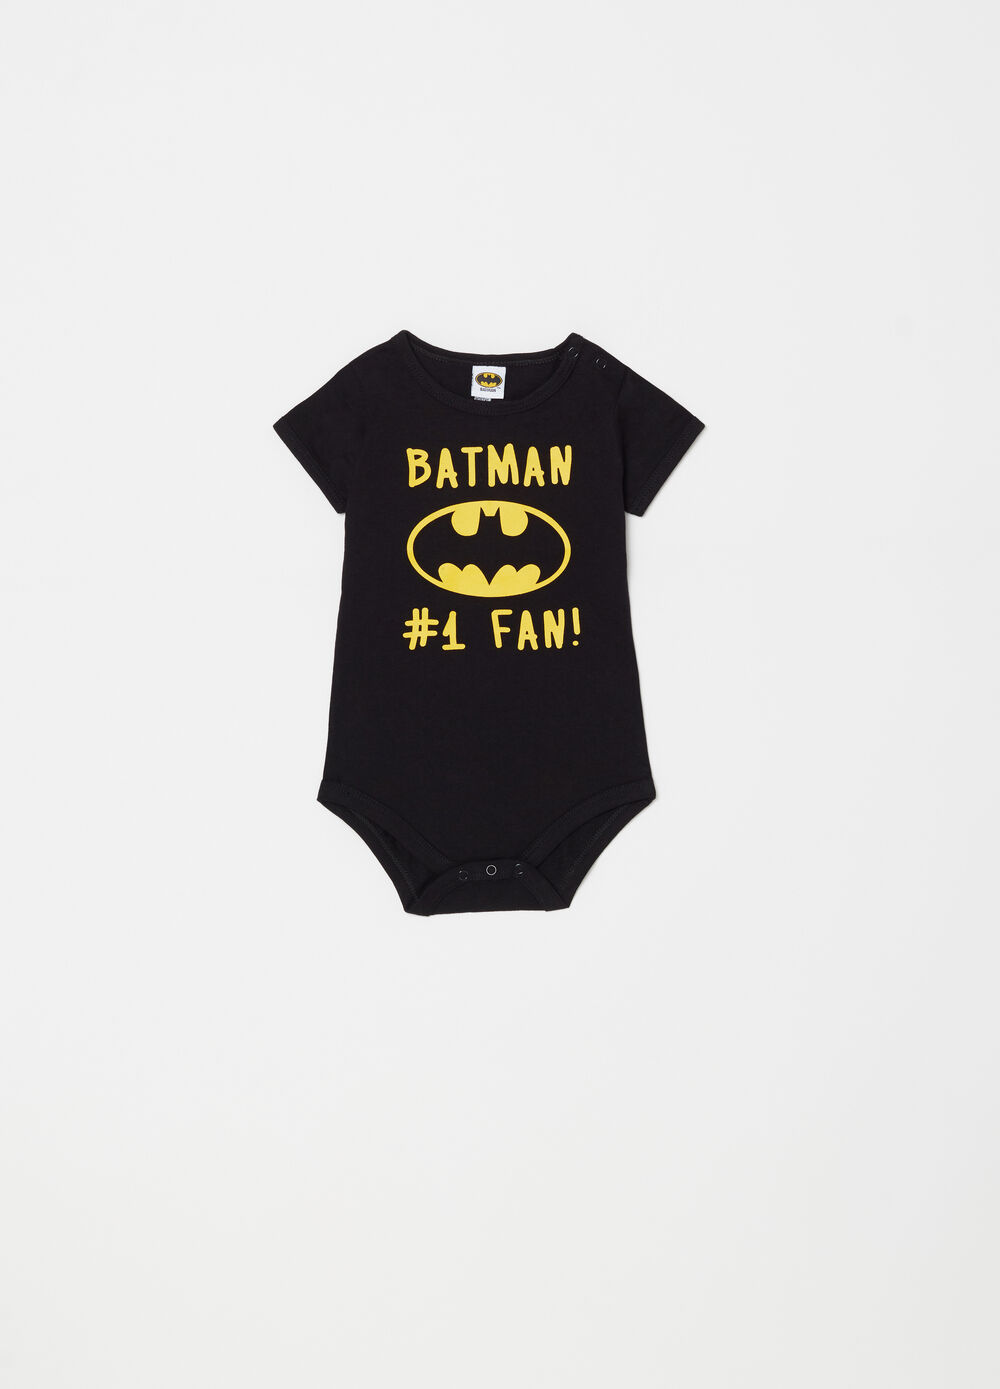 Body manga corta con estampado Batman